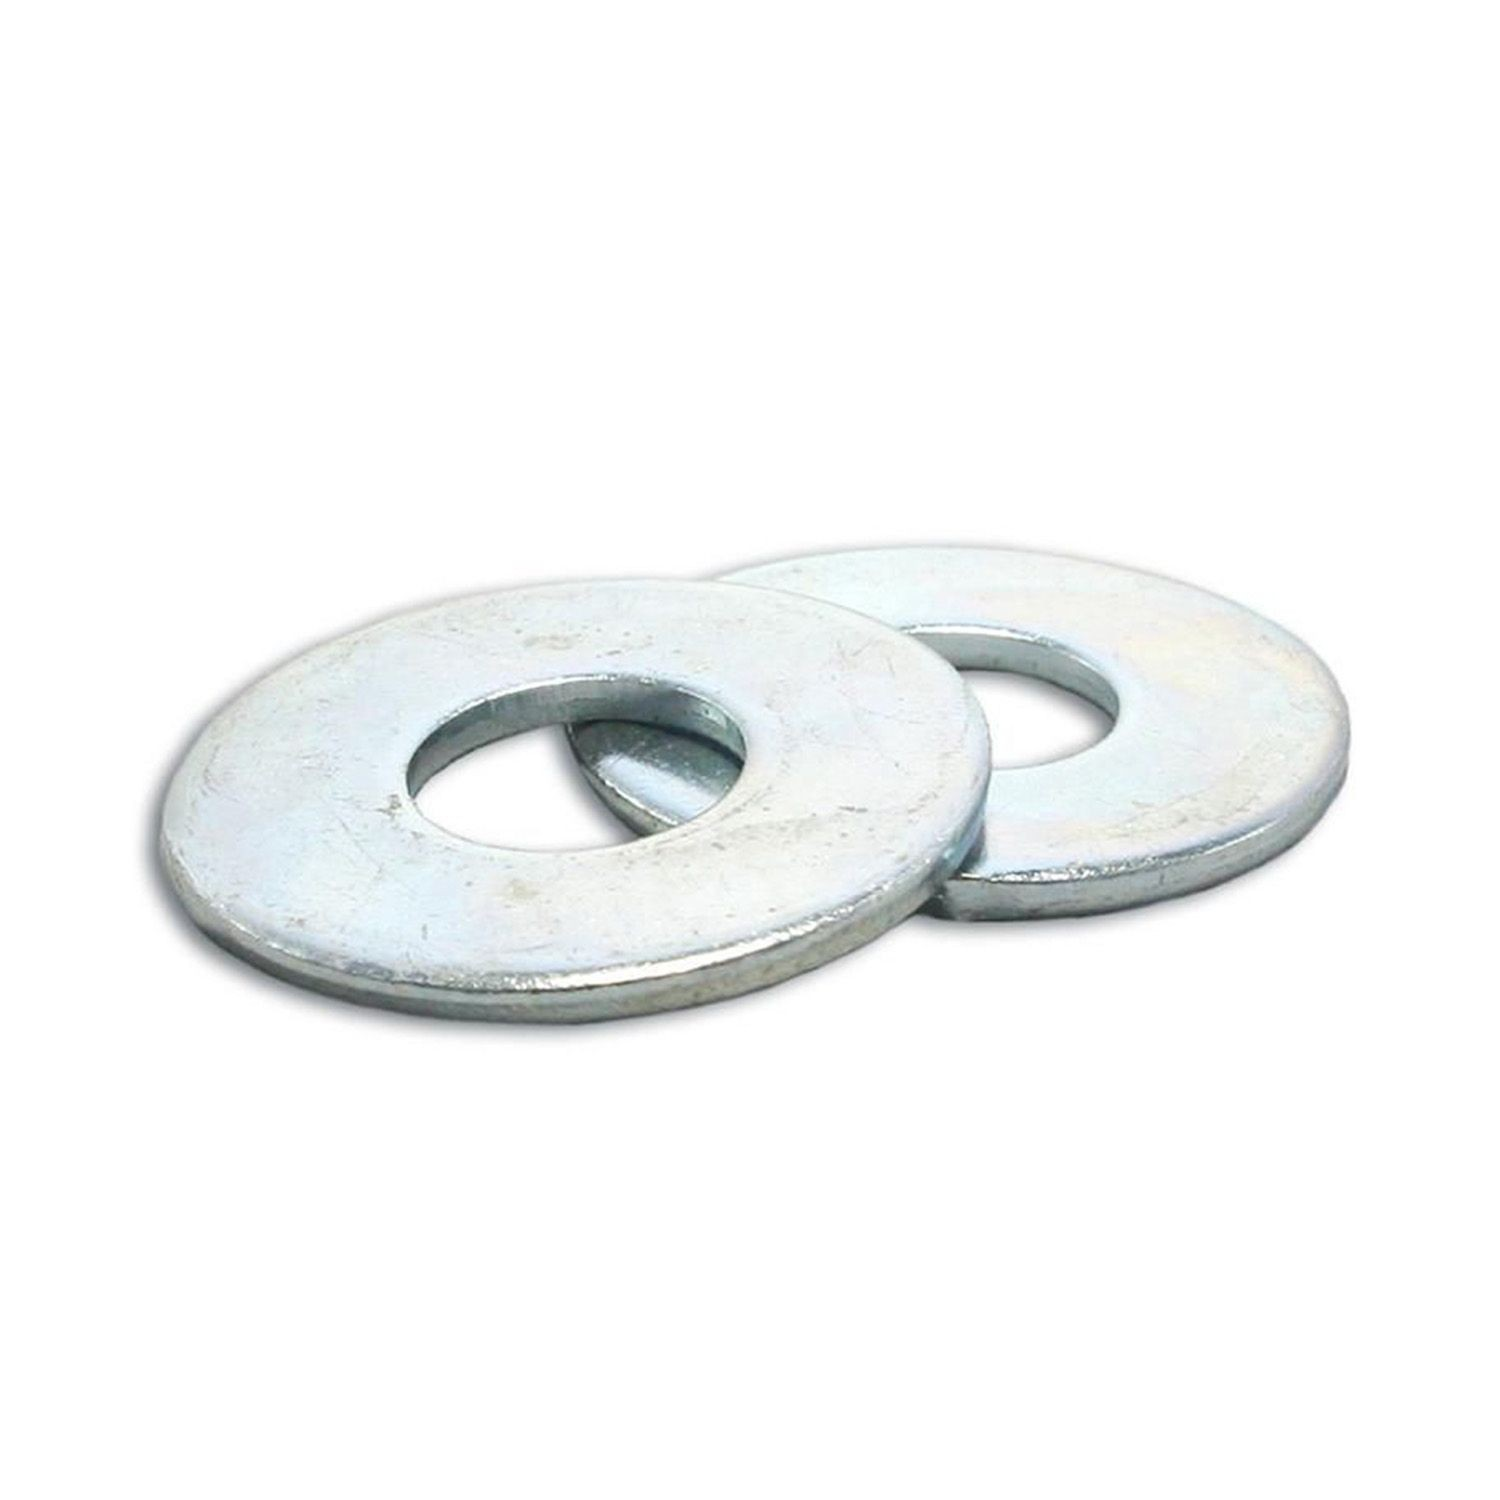 #10 Zinc Plated USS Flat Washer